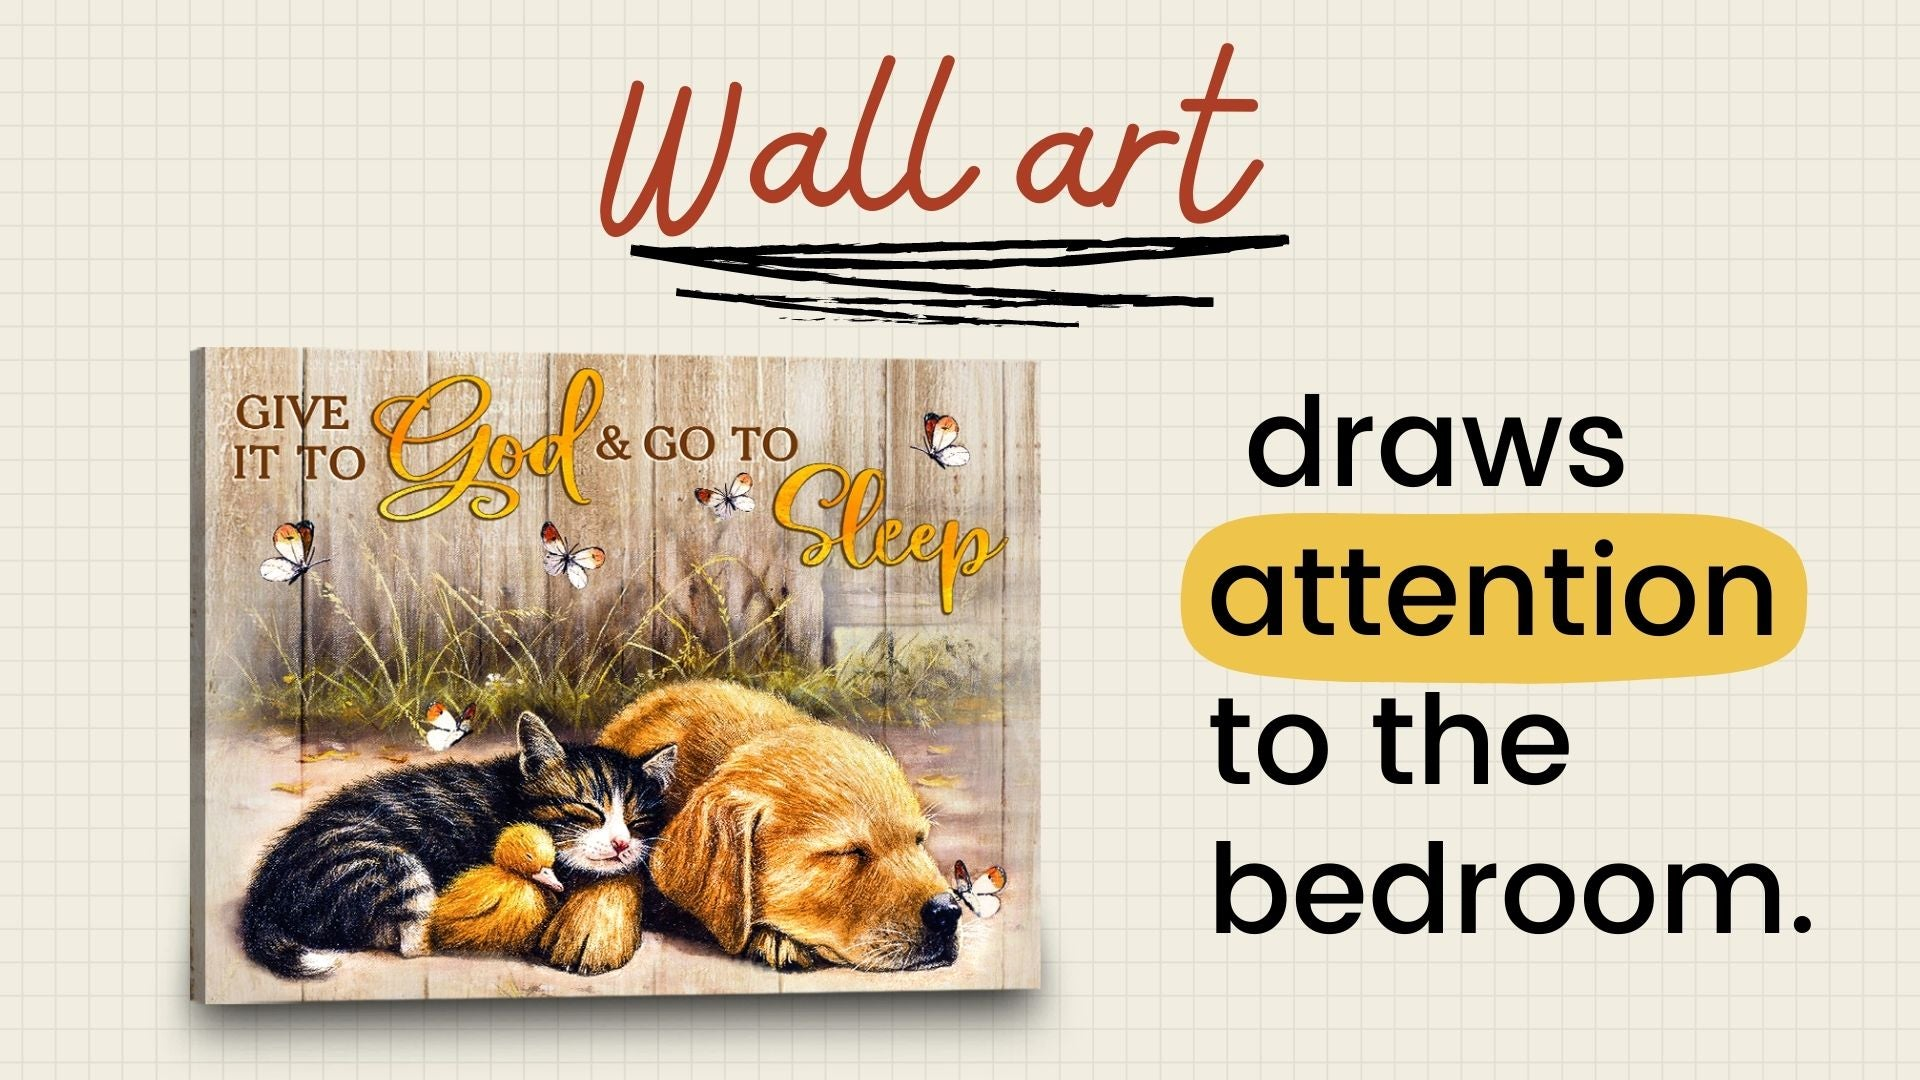 Wall art draws attention to the bedroom | Bedroom canvas art